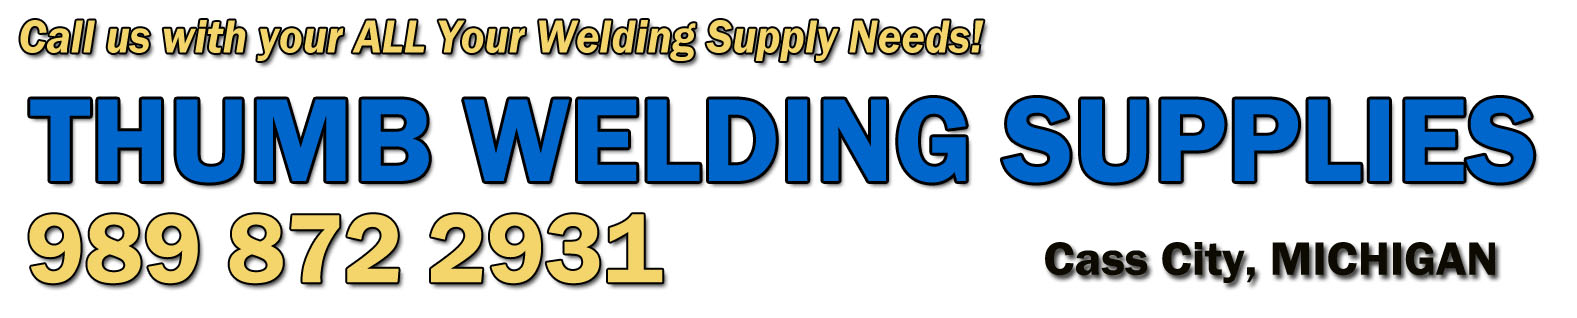 Thumb Welding Supplies, Inc